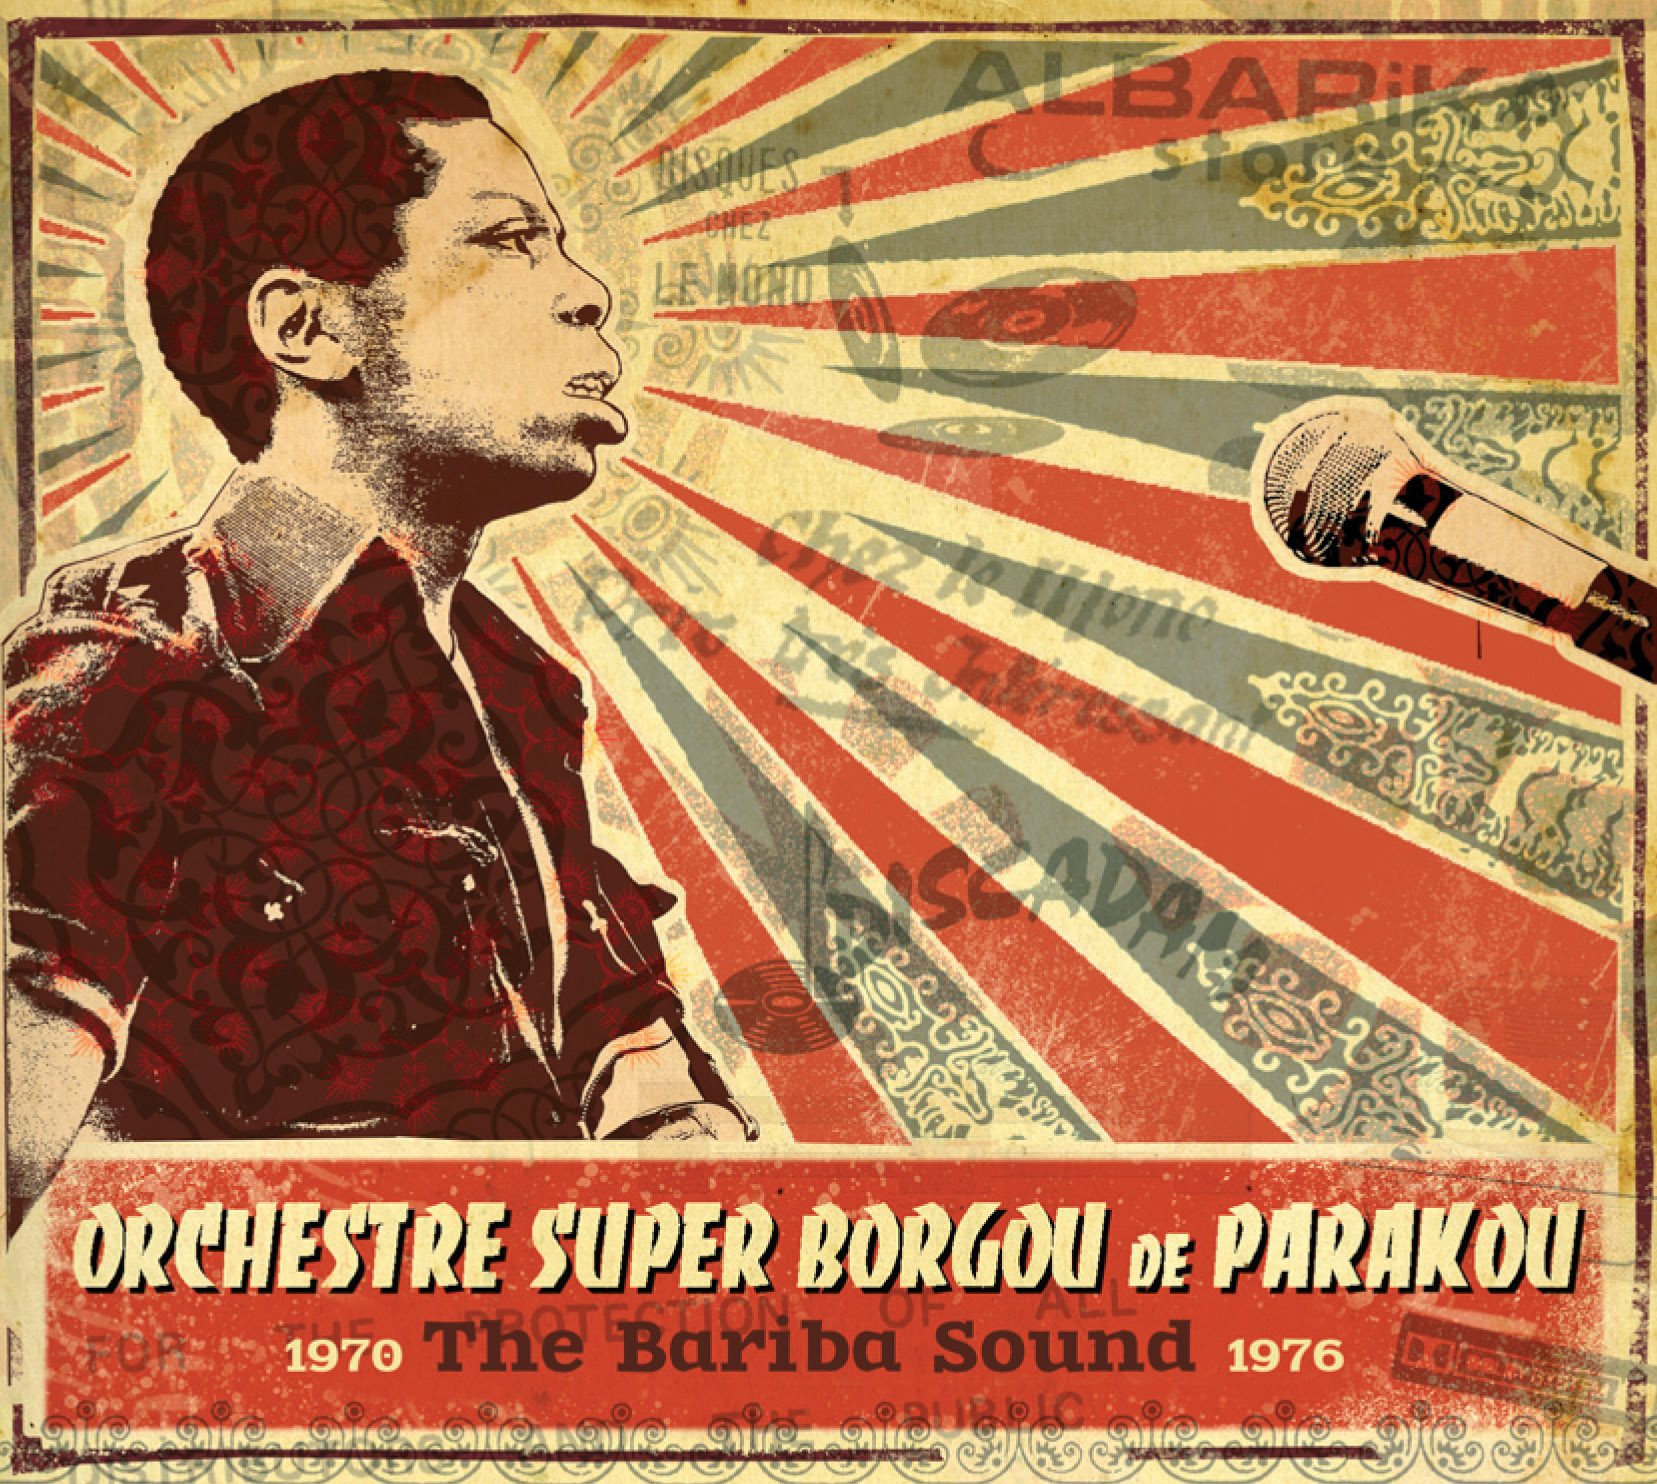 Orchestre Super Borgou de Parakou: The Bariba Sound  Release Date: March 26, 2012 Label: Analog Africa  SERVICE: Restoration, Mastering SOURCE MATERIAL: 45 rpm records NUMBER OF DISCS: 1CD, 2 LP GENRE: Afro-Beat FORMAT: CD and LP